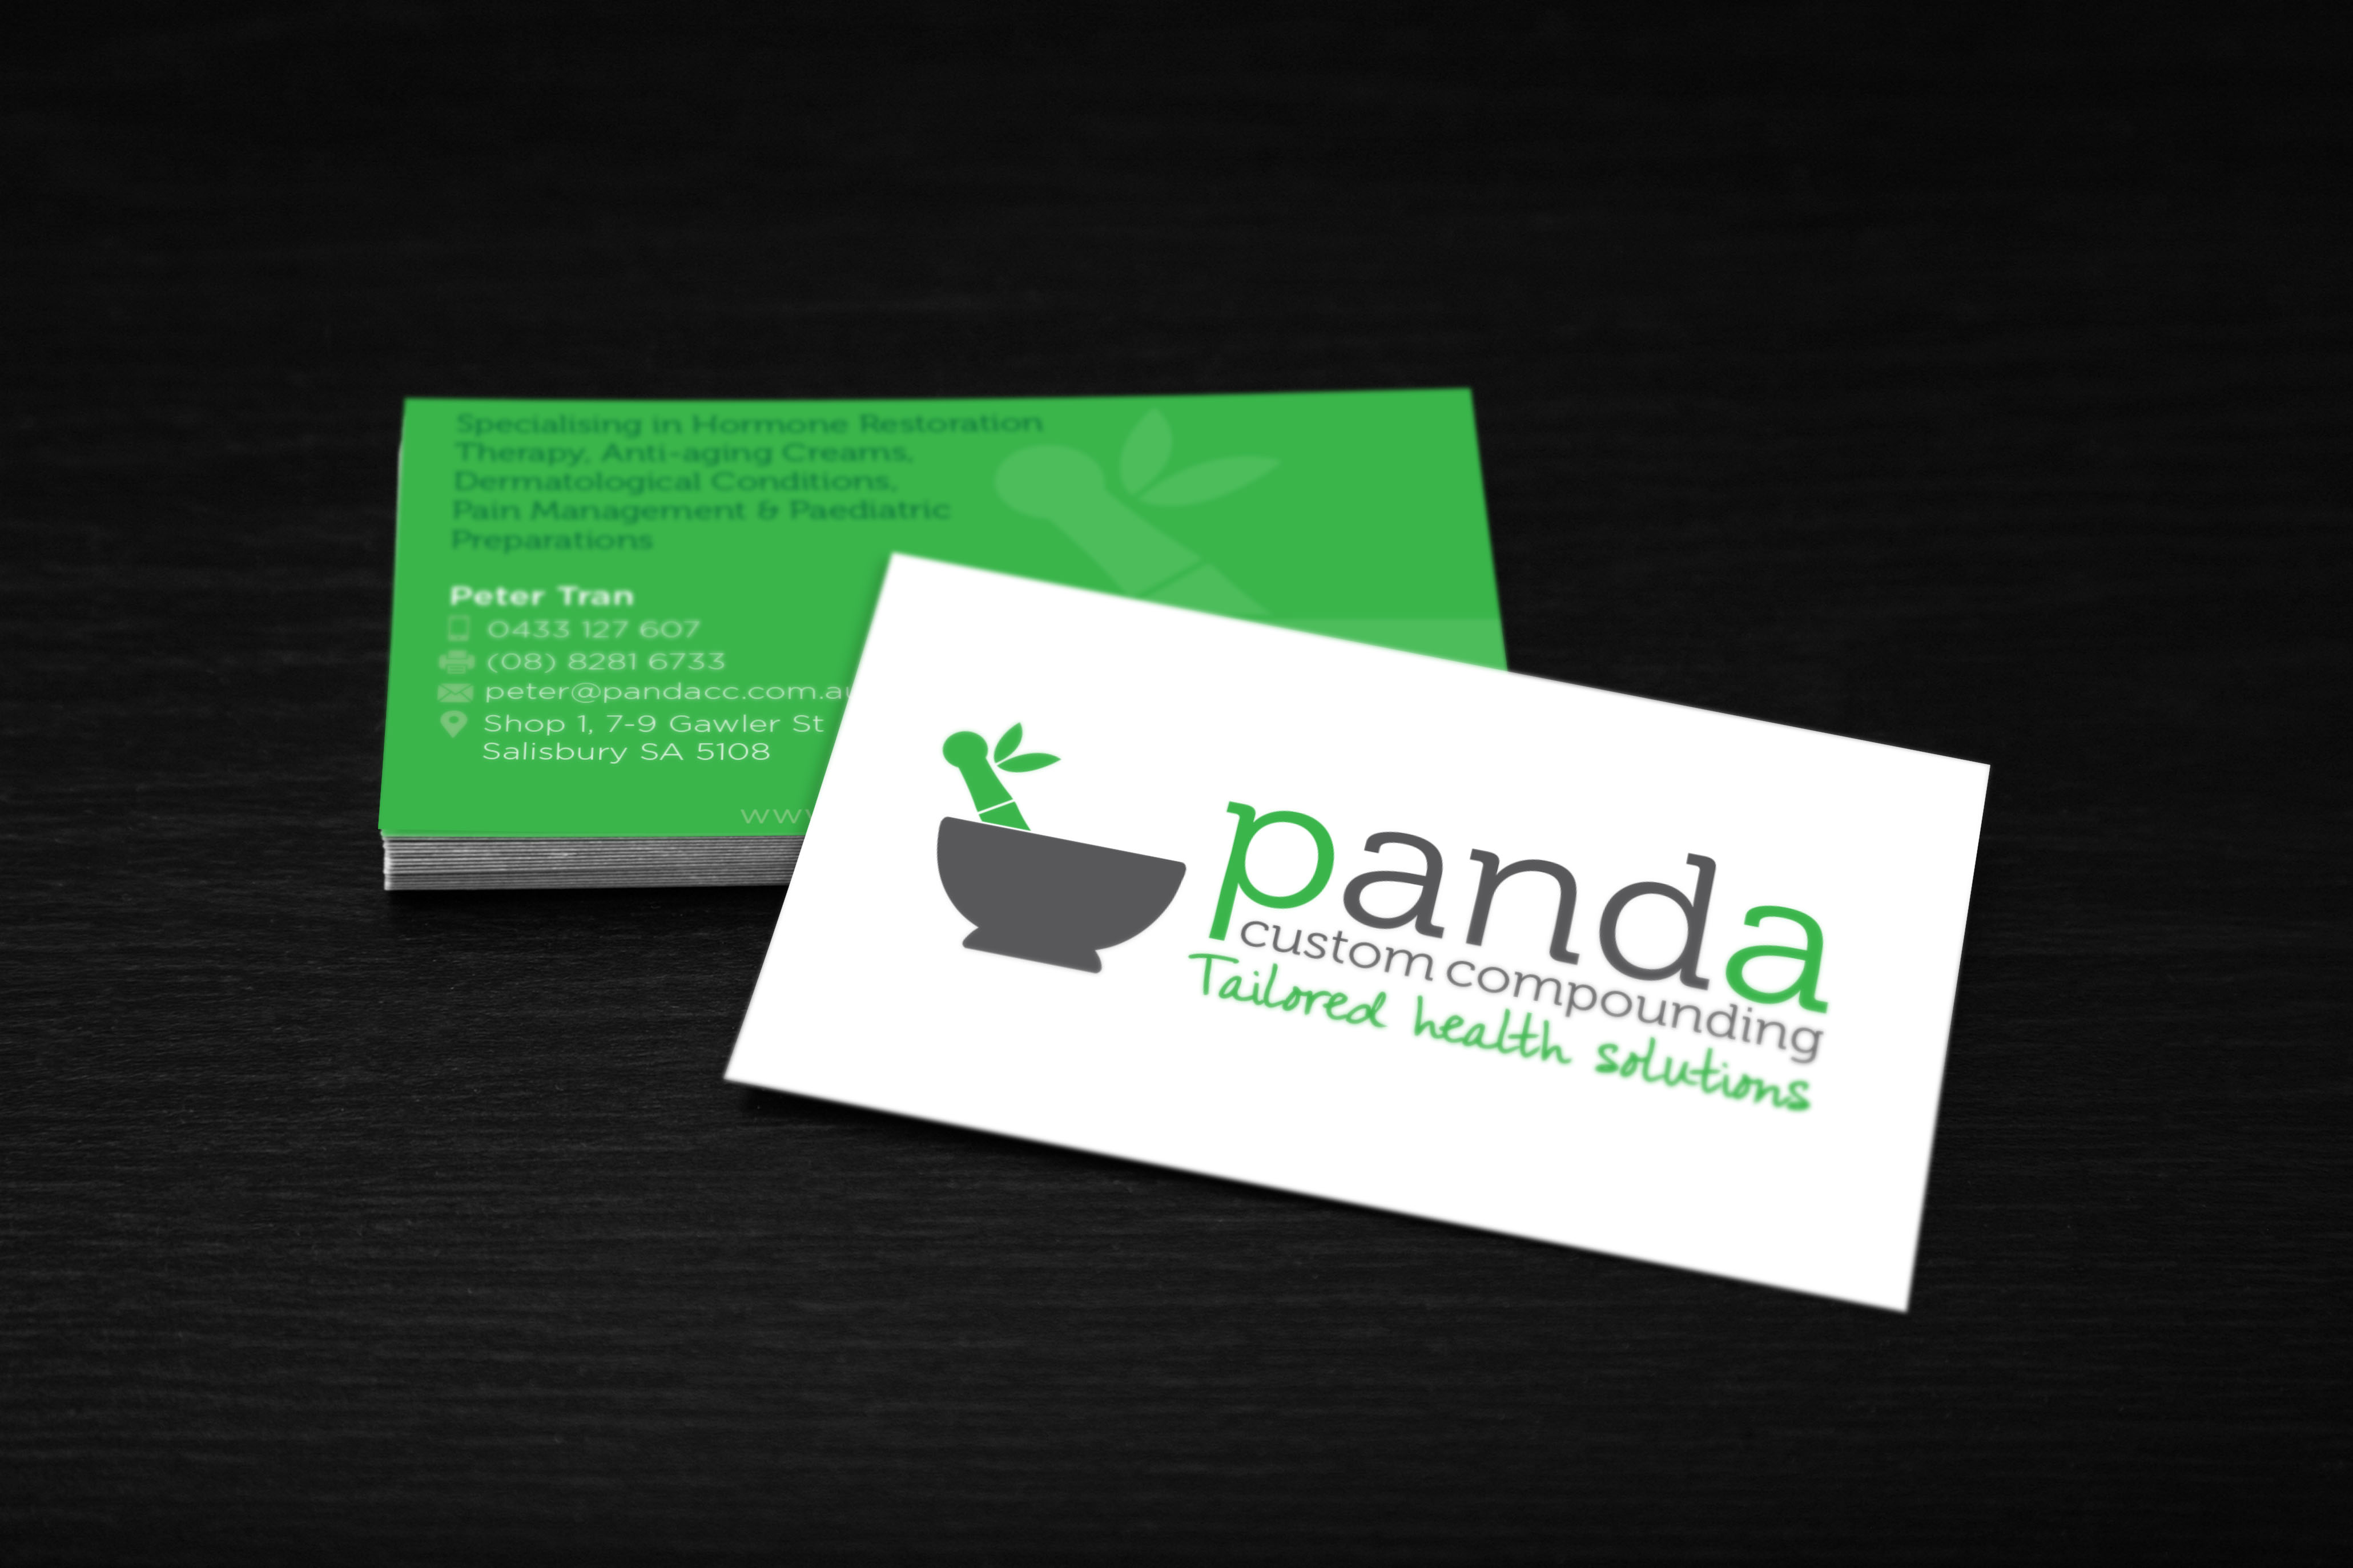 P and A Compounding business card